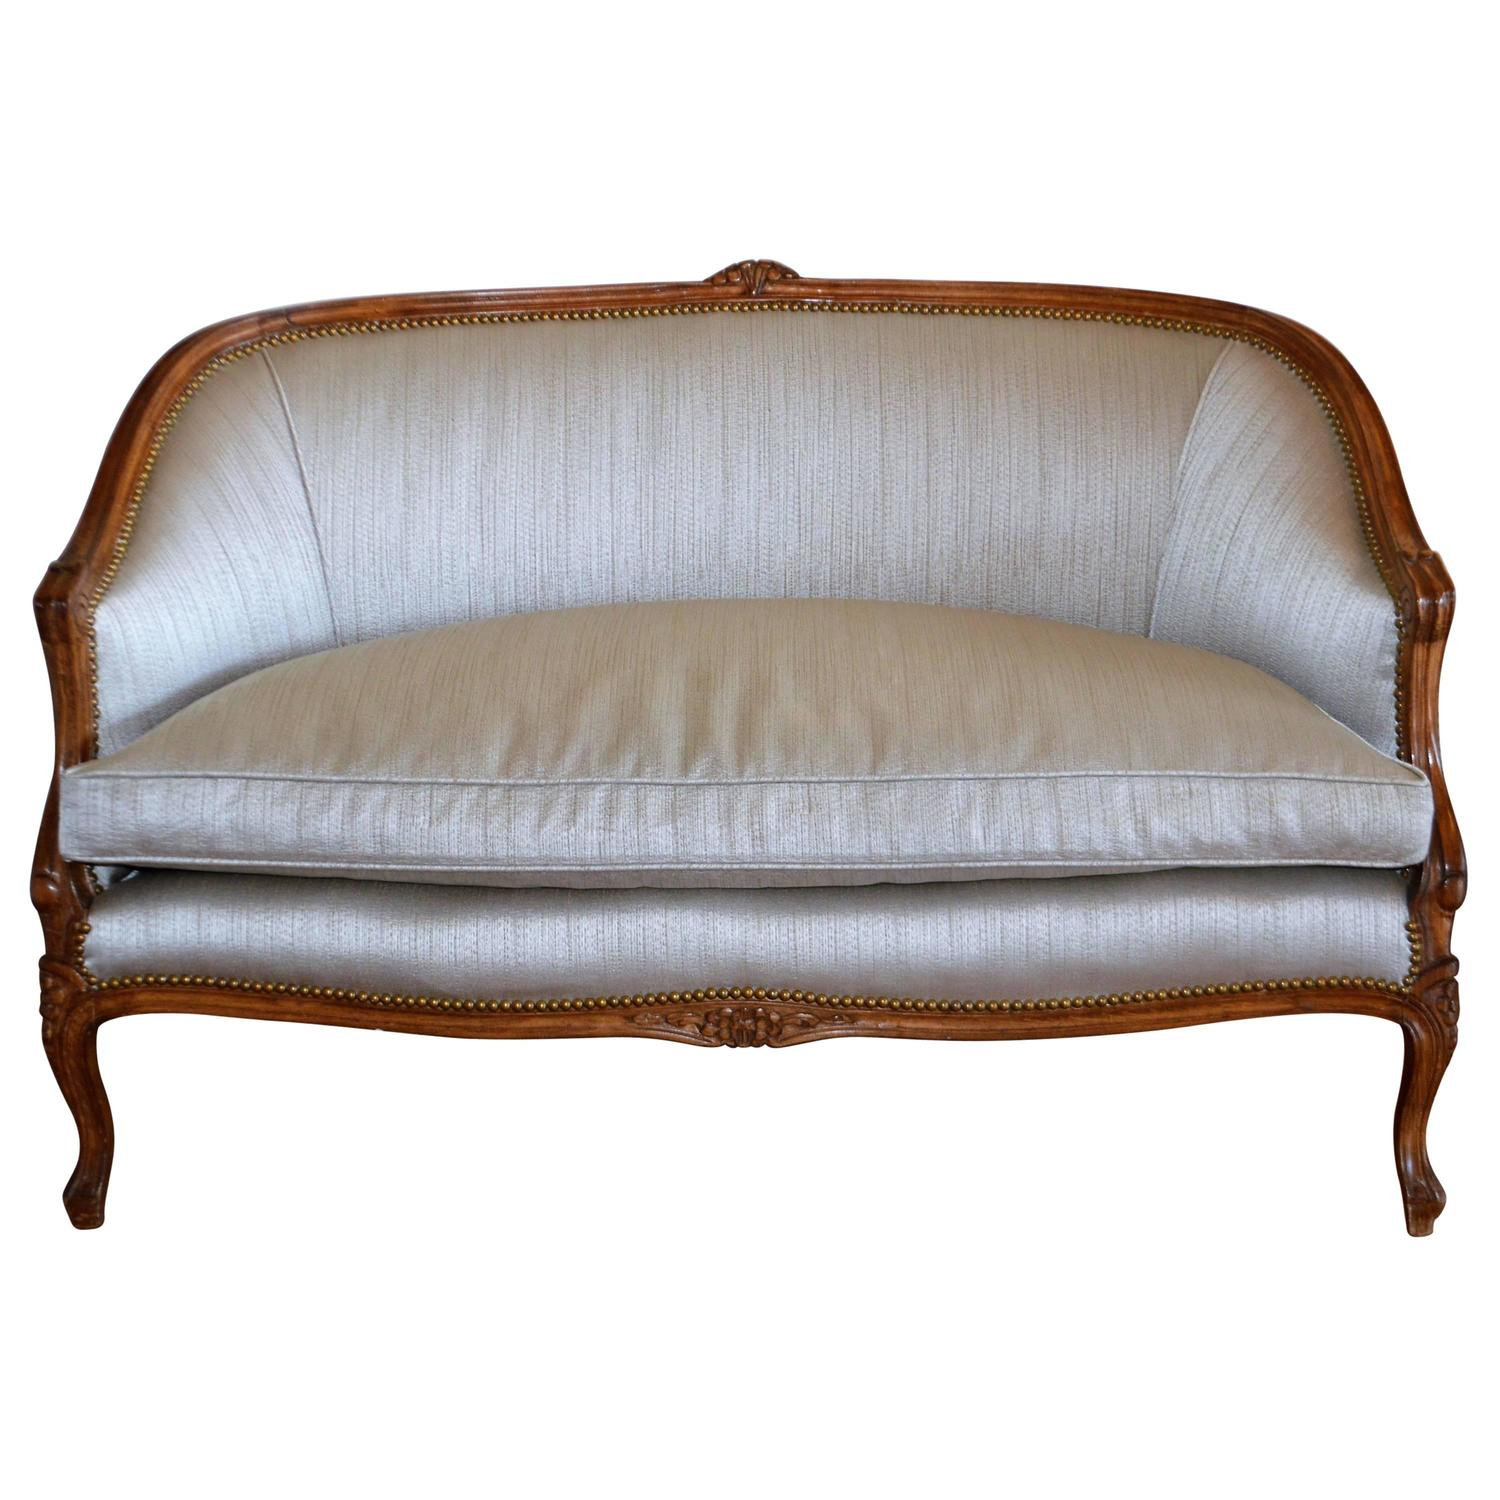 Louis xv style canape for sale at 1stdibs for Canape for sale